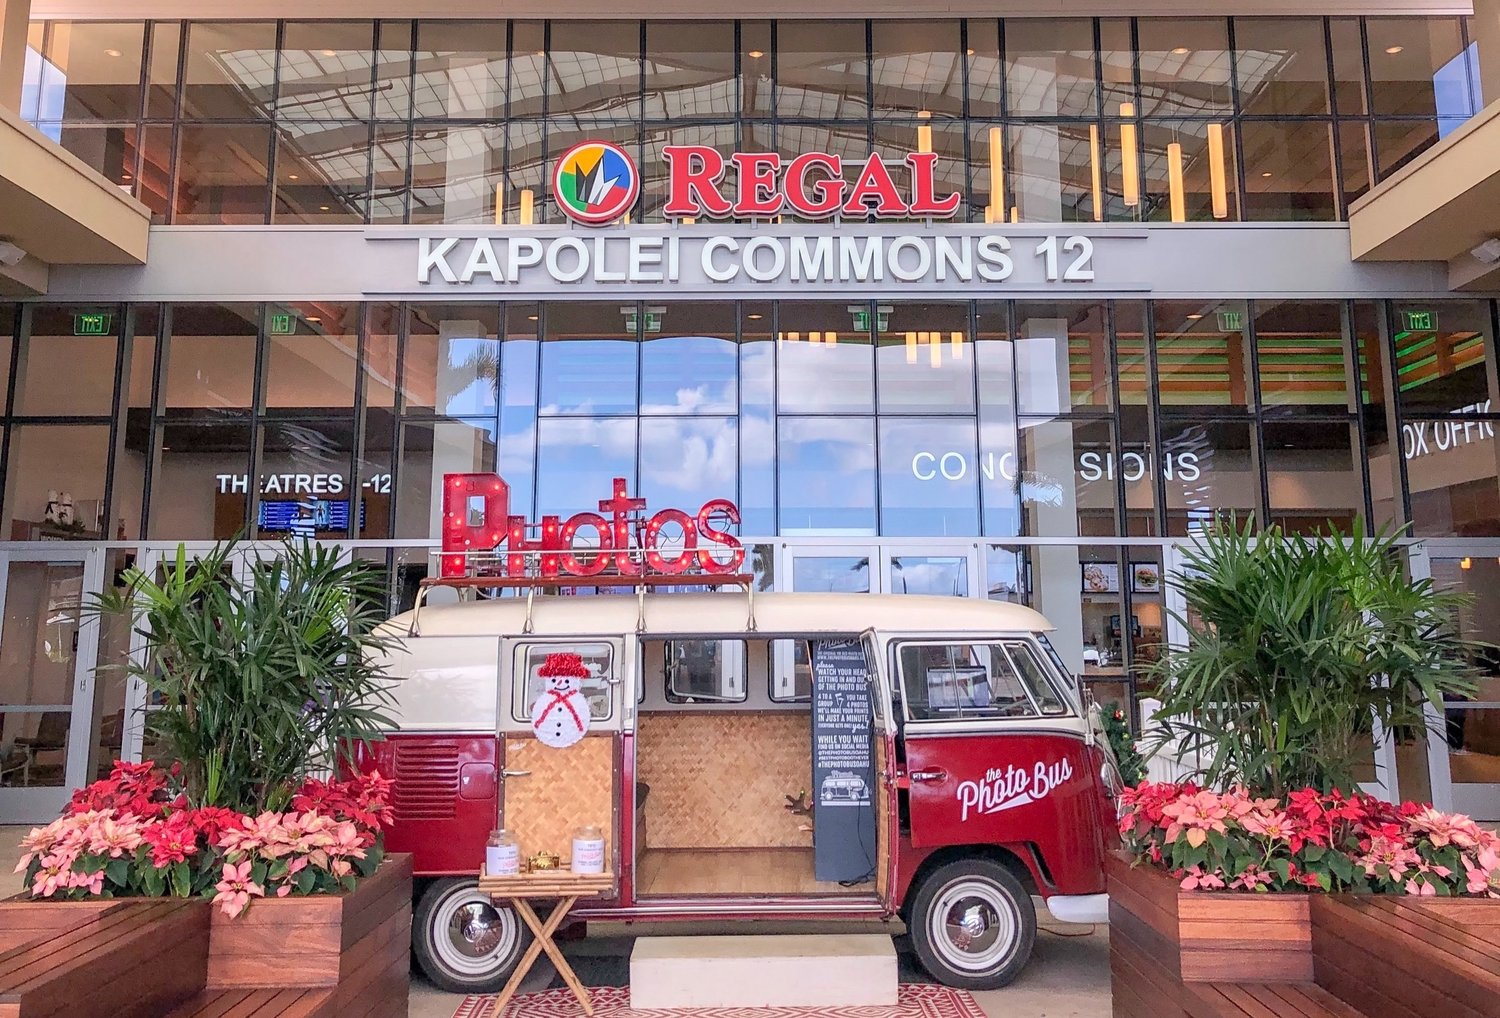 The Photo Bus Oahu - A Mobile Photo Booth in a Vintage VW Bus